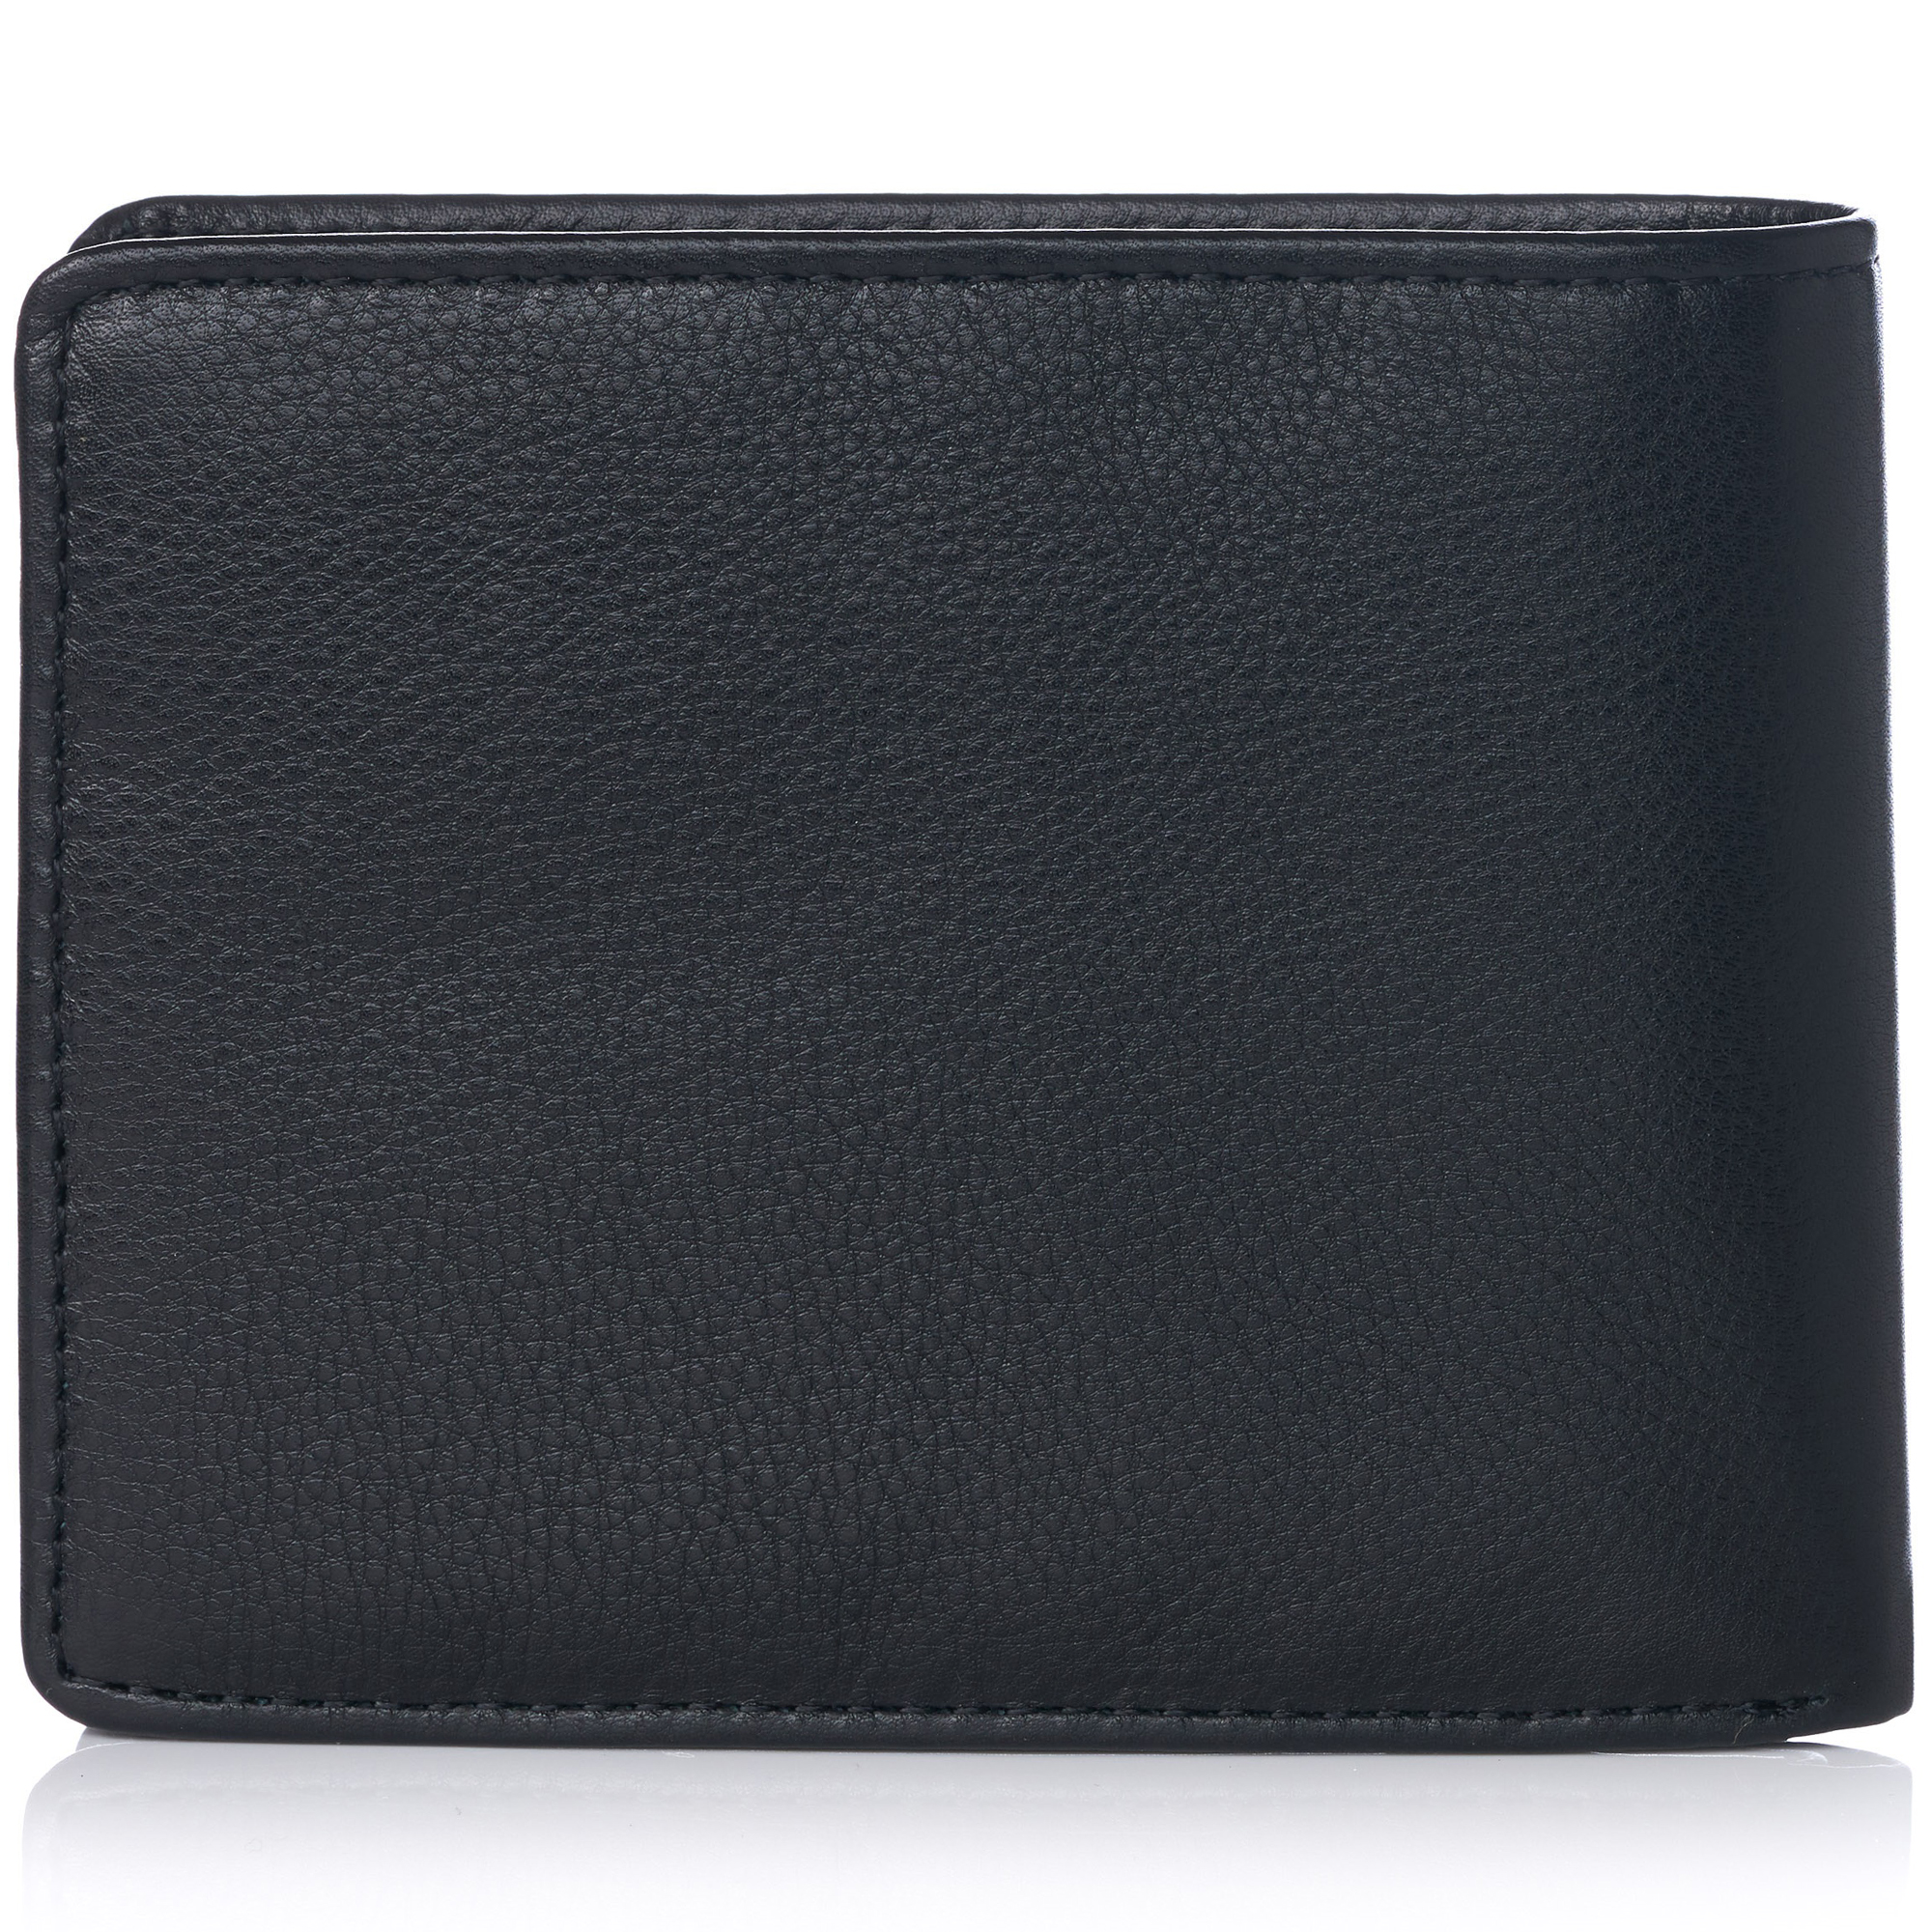 miniature 92 - Alpine-Swiss-RFID-Mens-Wallet-Deluxe-Capacity-Passcase-Bifold-Two-Bill-Sections